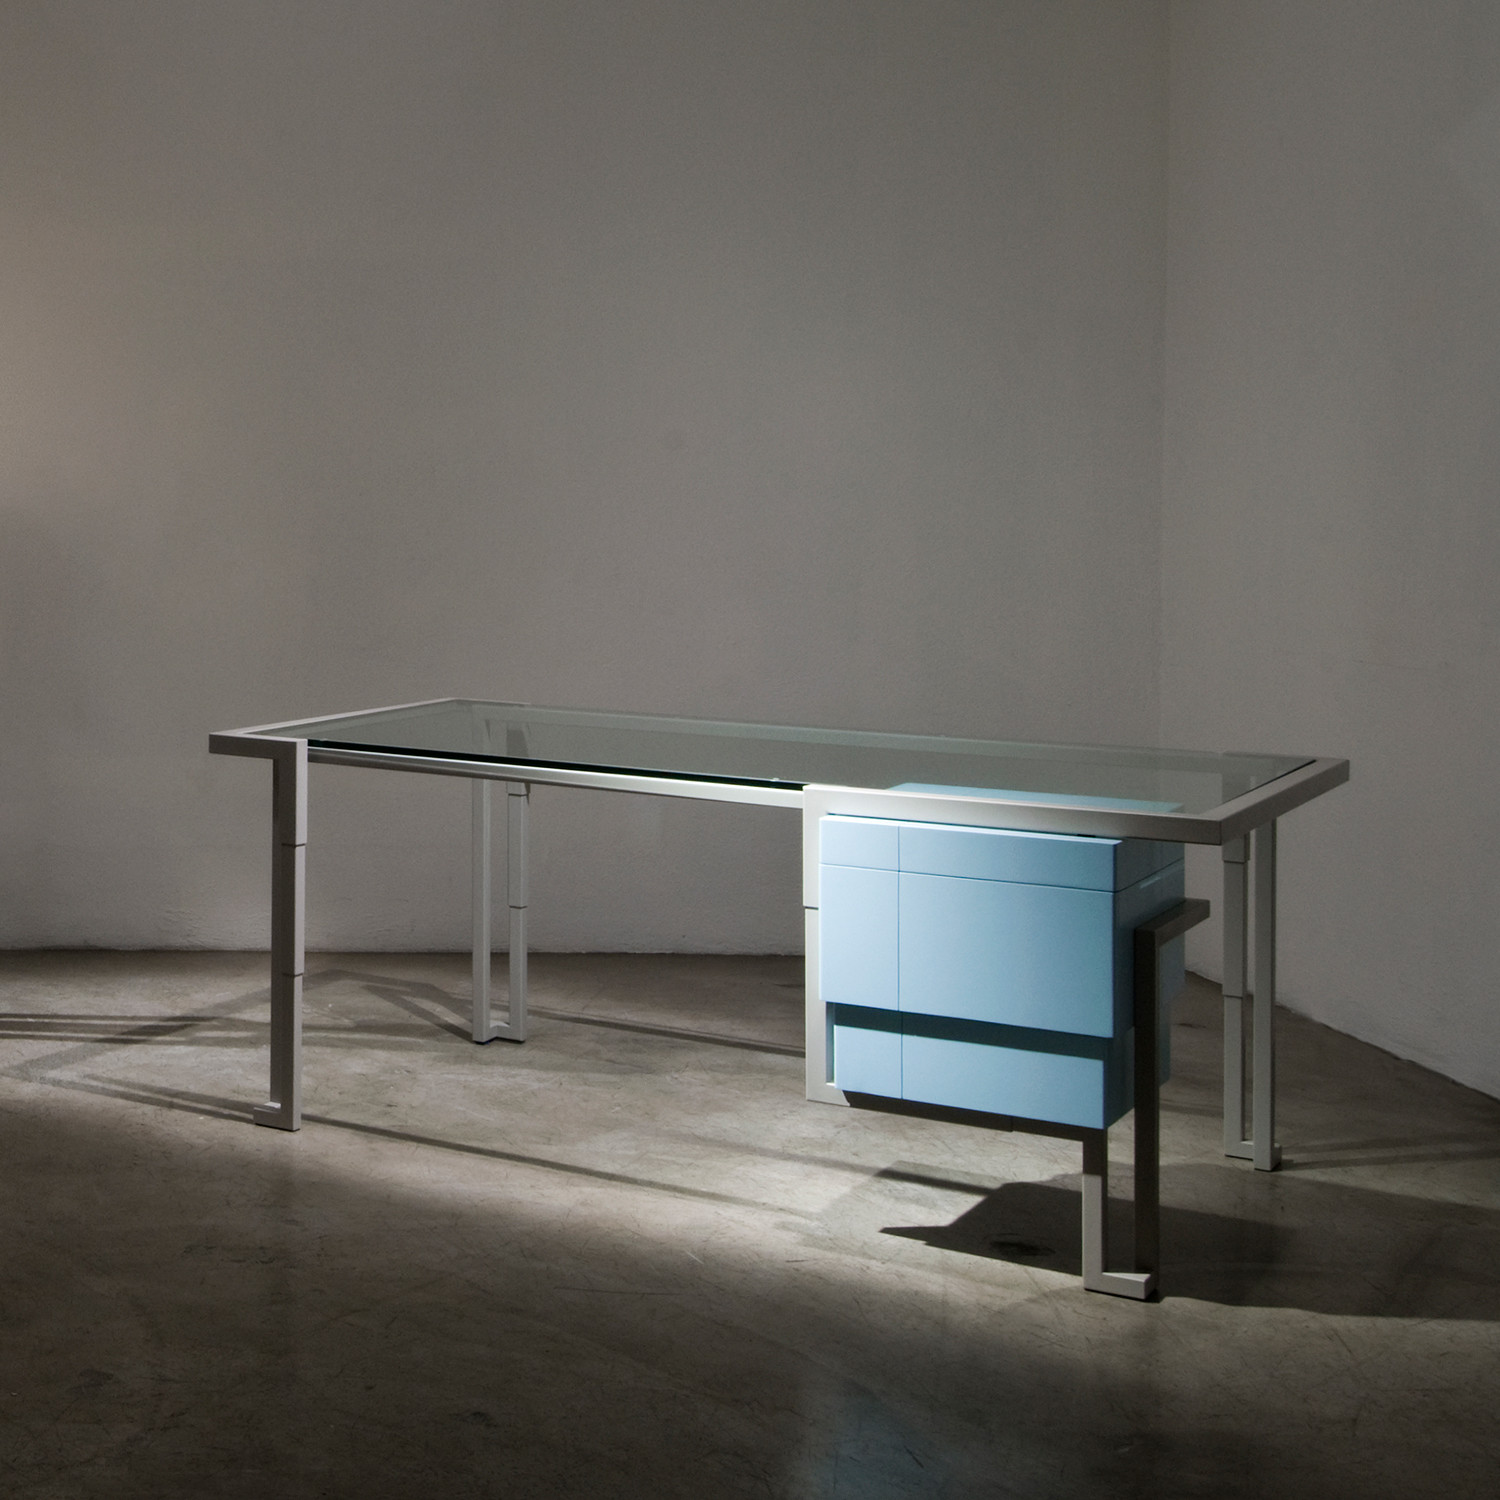 Small Movable Kitchen Island For Sale Thinc Technology: Touch Of Modern